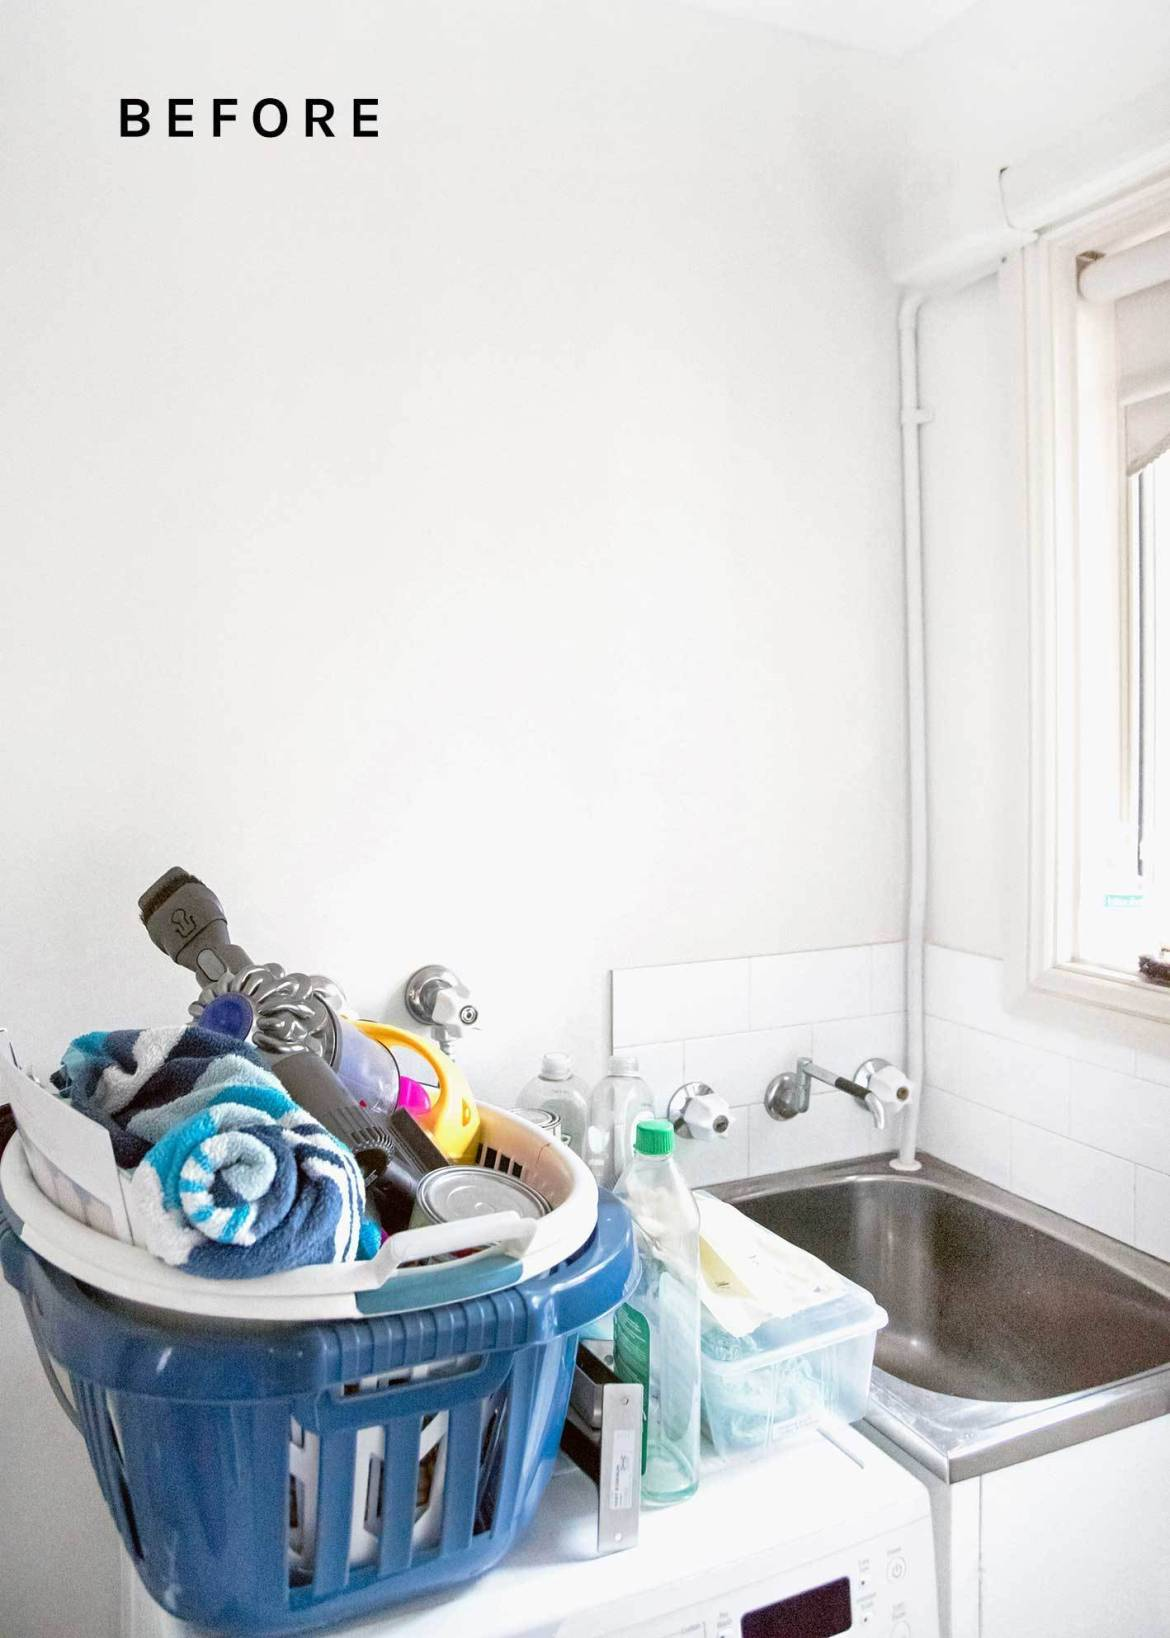 Before we applied laundry room storage ideas to our cluttered utility room